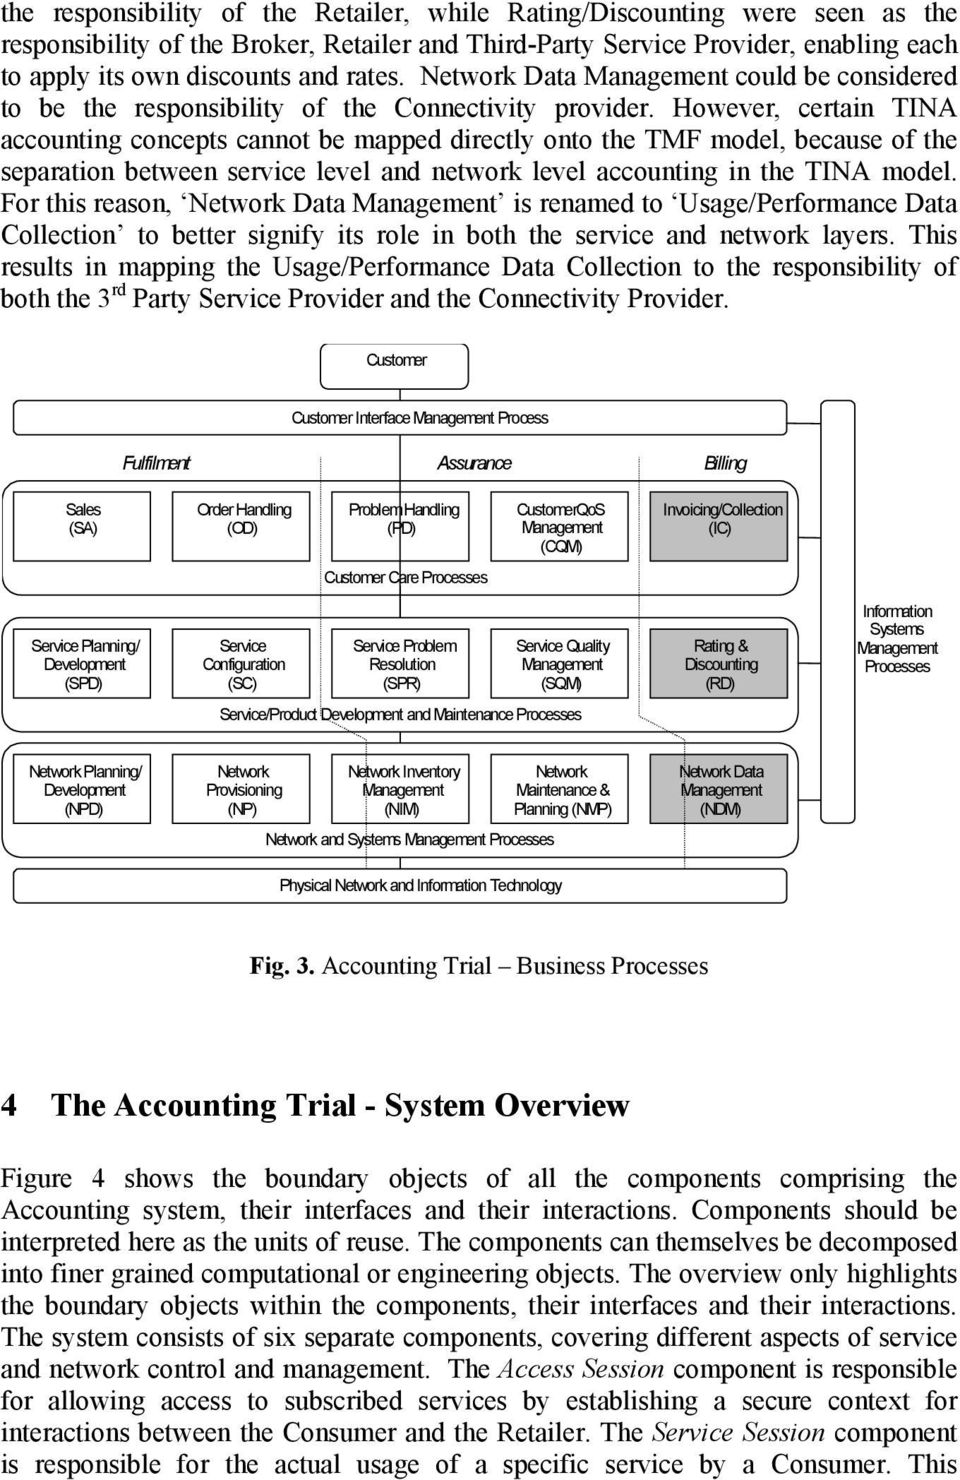 However, certain TINA accounting concepts cannot be mapped directly onto the TMF model, because of the separation between service level and network level accounting in the TINA model.